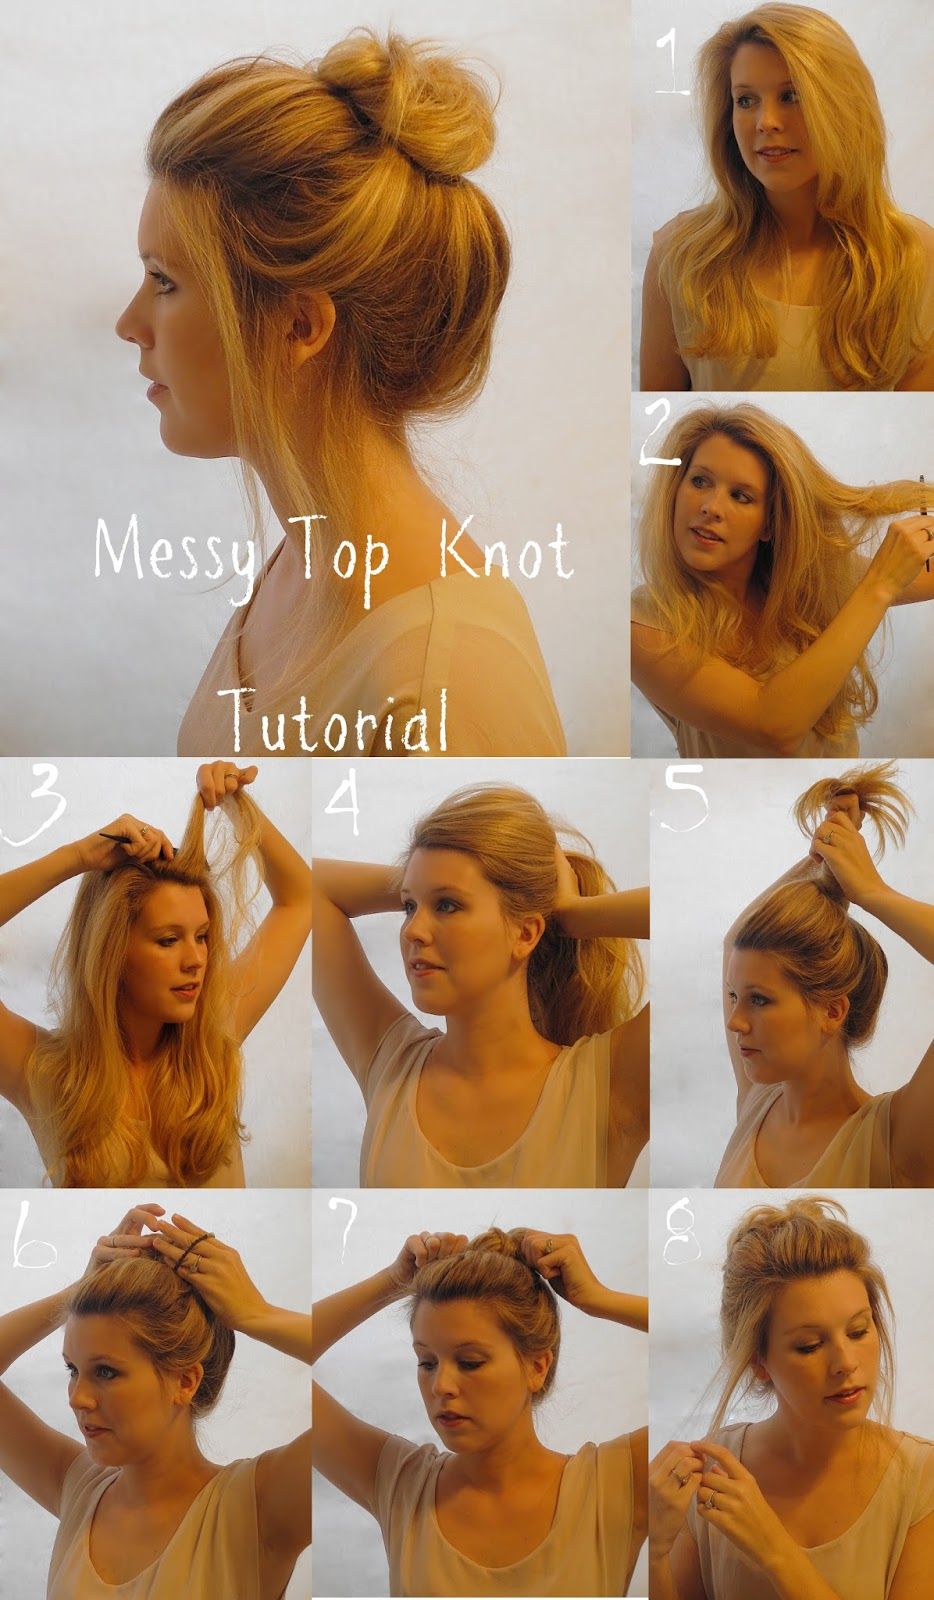 Astonishing Top 25 Messy Hair Bun Tutorials Perfect For Those Lazy Mornings Hairstyle Inspiration Daily Dogsangcom